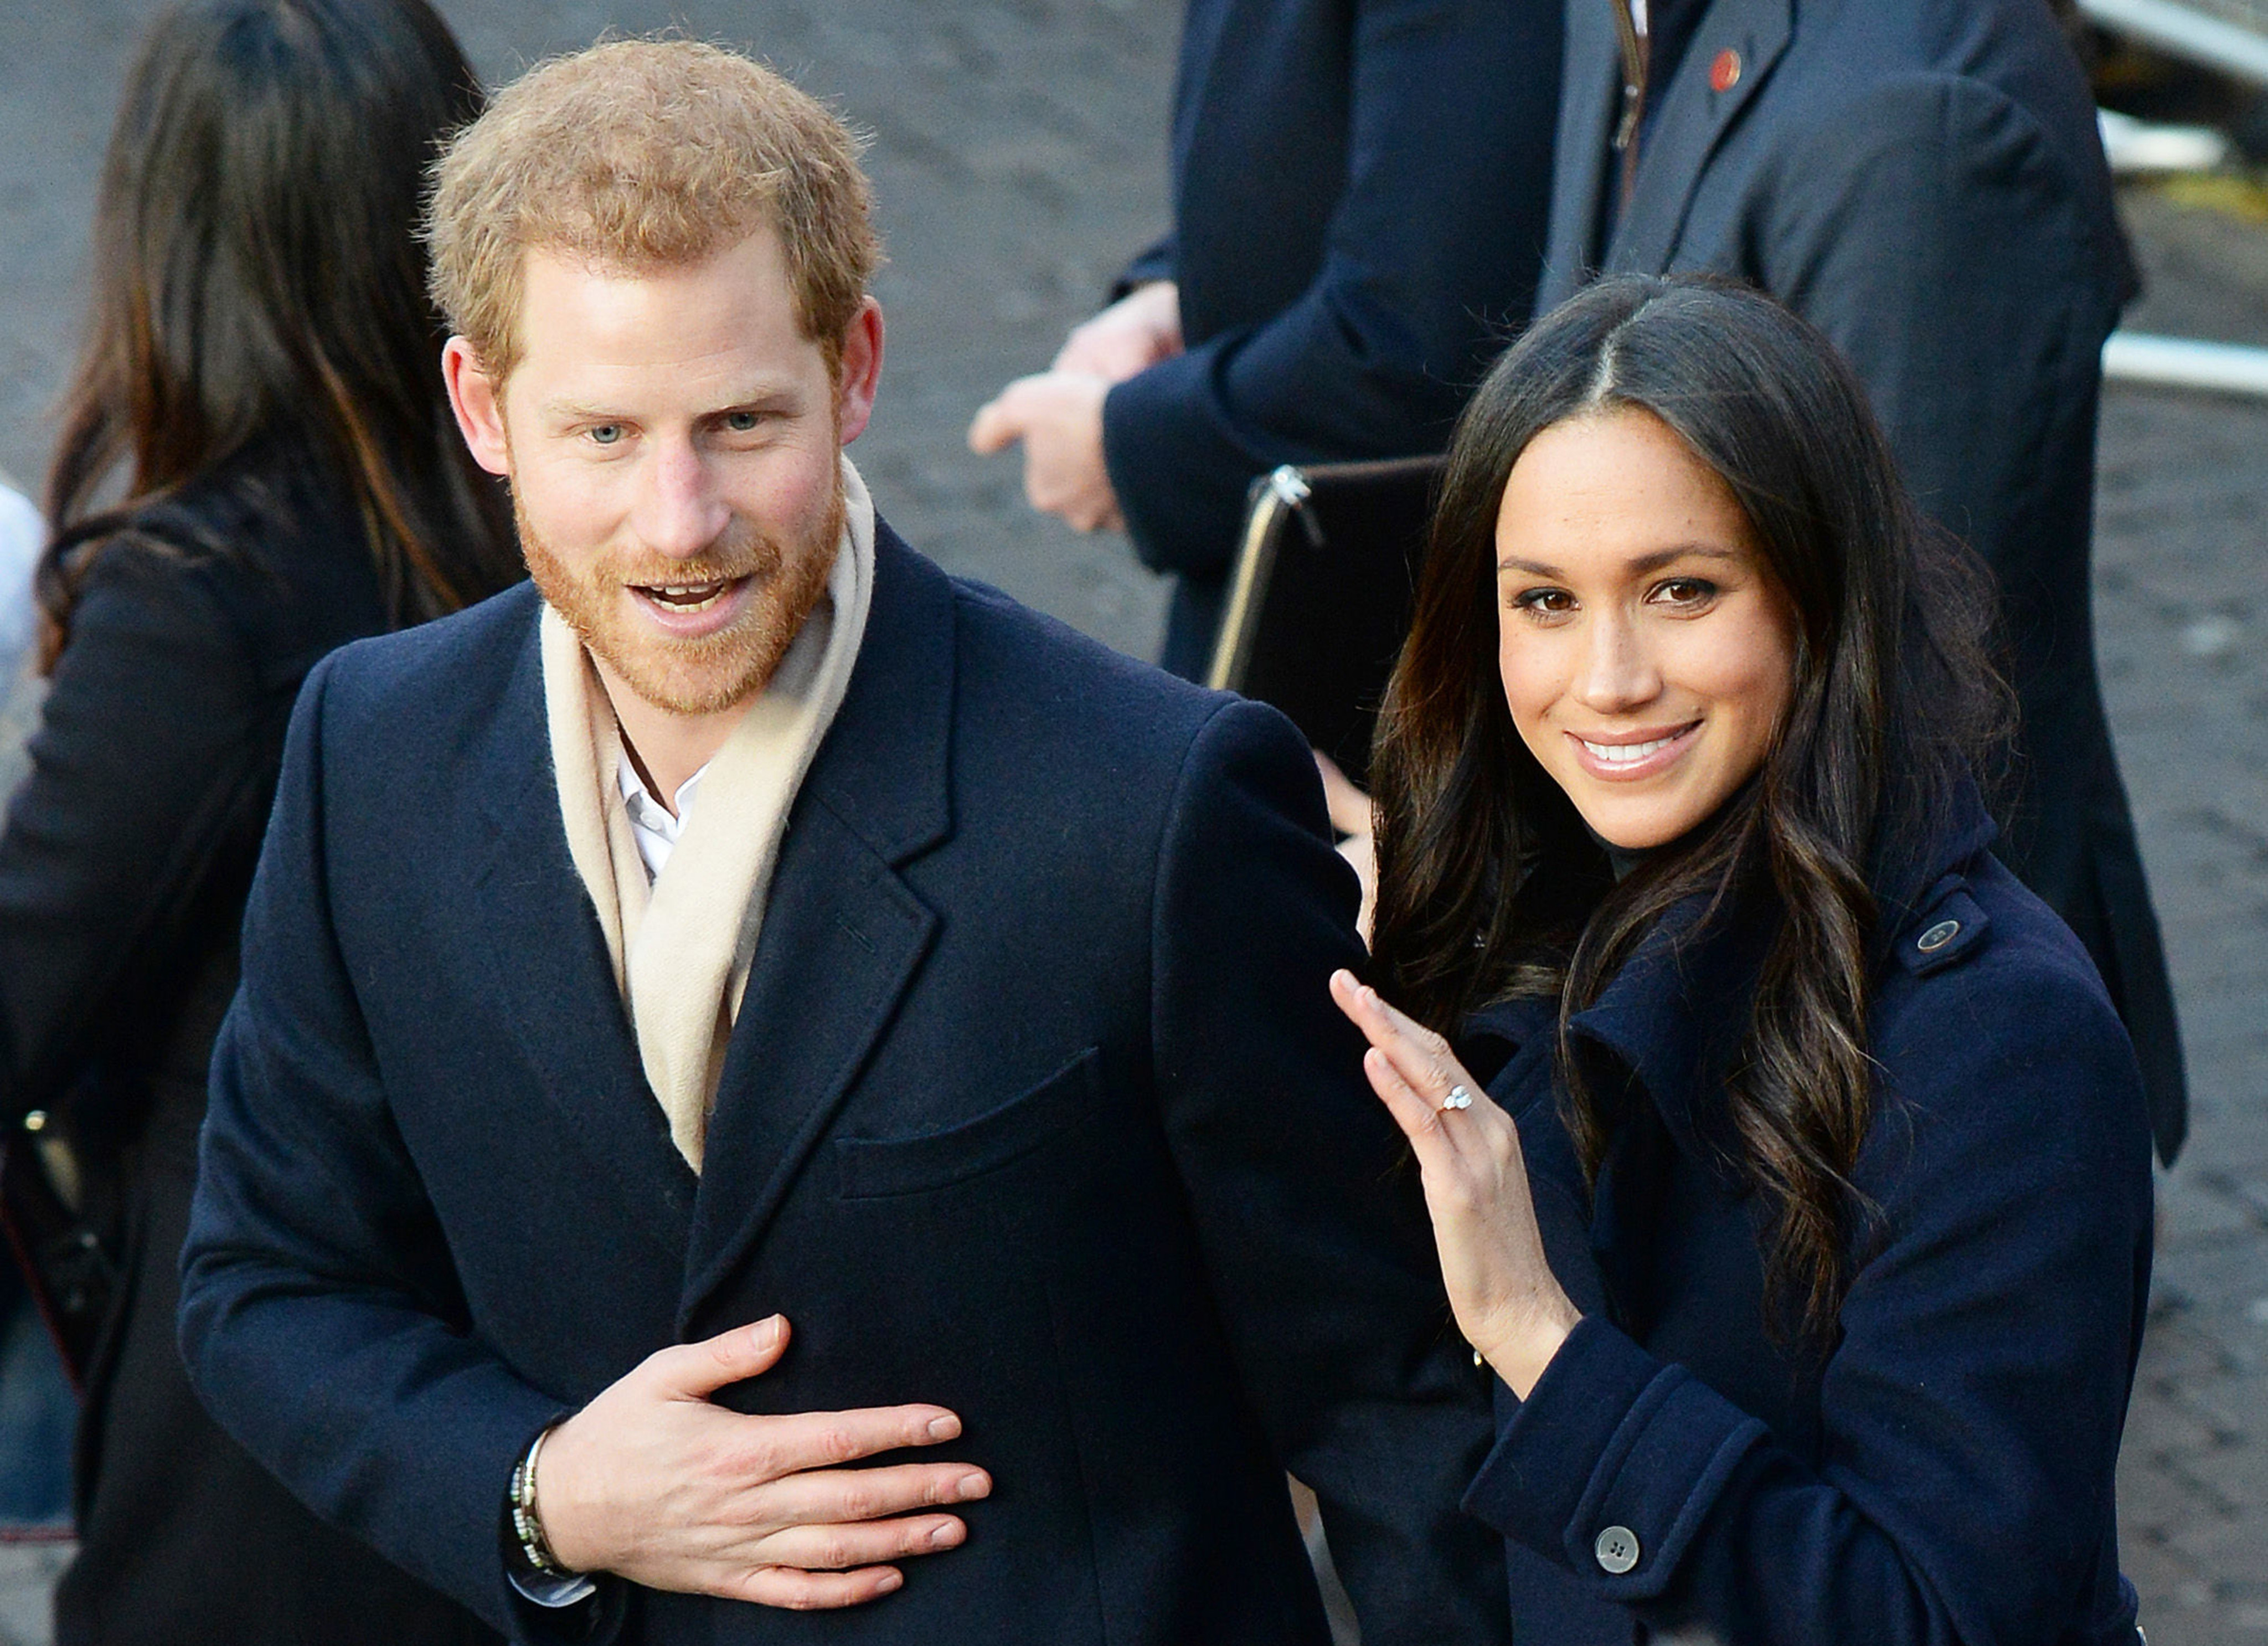 Prince Harry and Meghan Markle arrive at the Nottingham Contemporary in Nottingham, to attend a Terrence Higgins Trust World AIDS Day charity fair (Joe Giddens/PA)